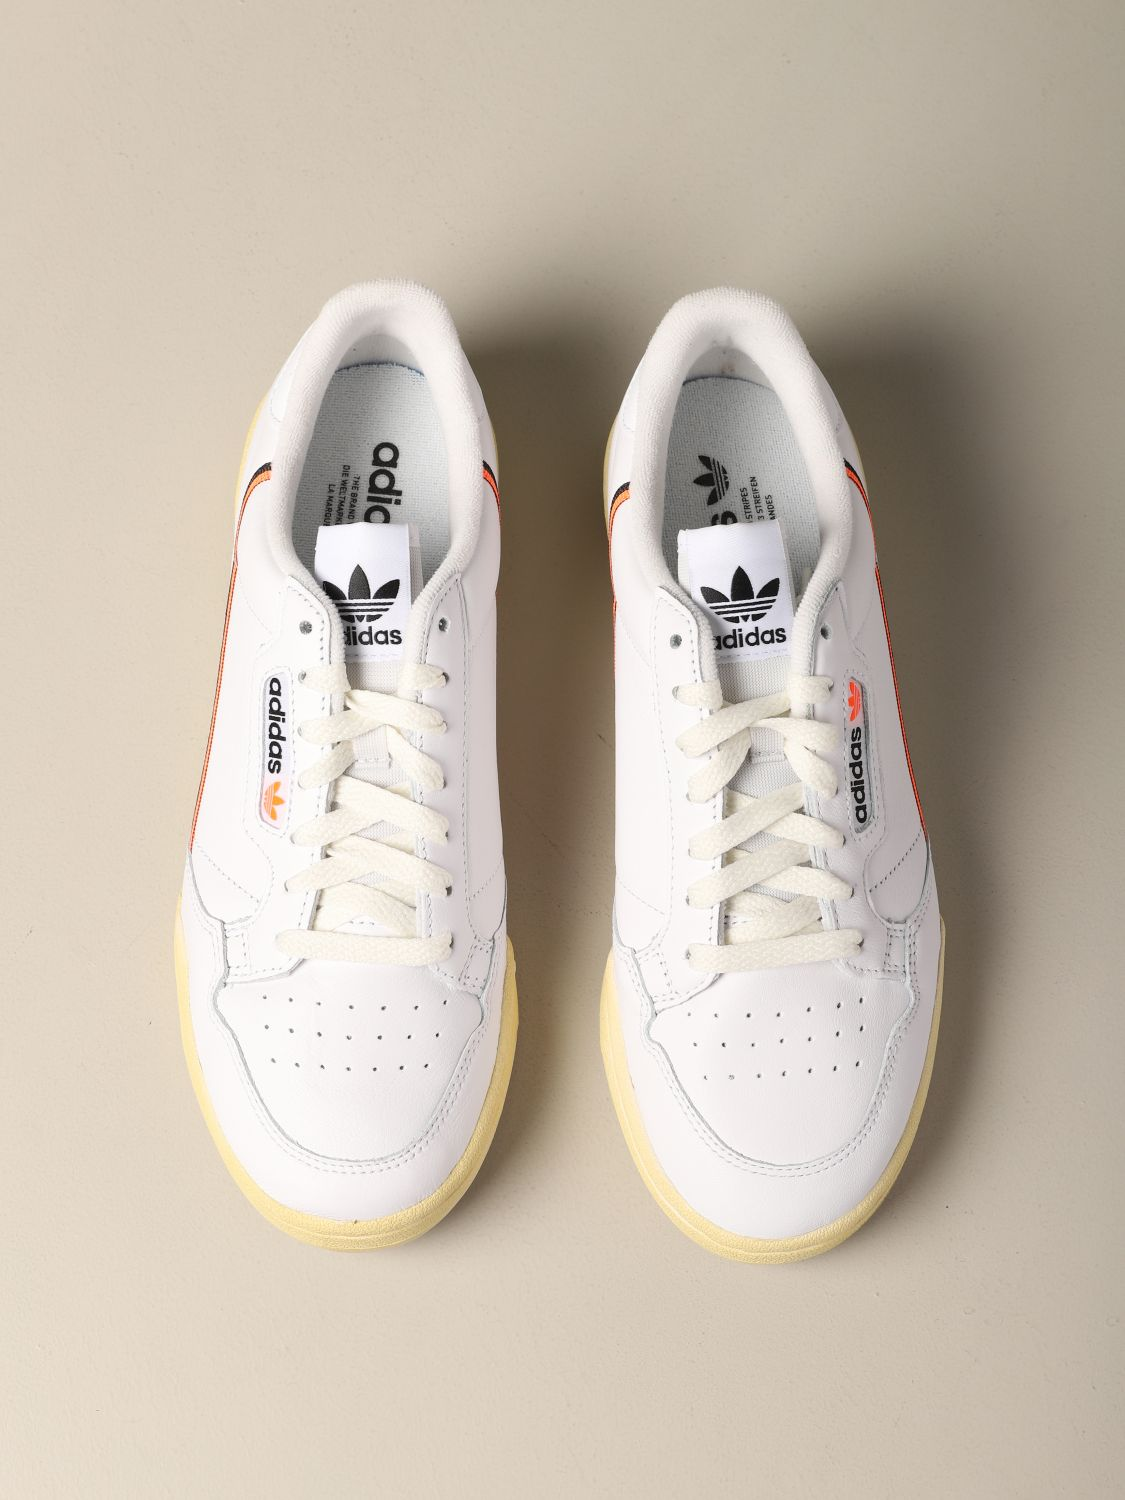 Sneakers Adidas Originals: Sneakers Continental 80 Adidas Originals in pelle bianco 3